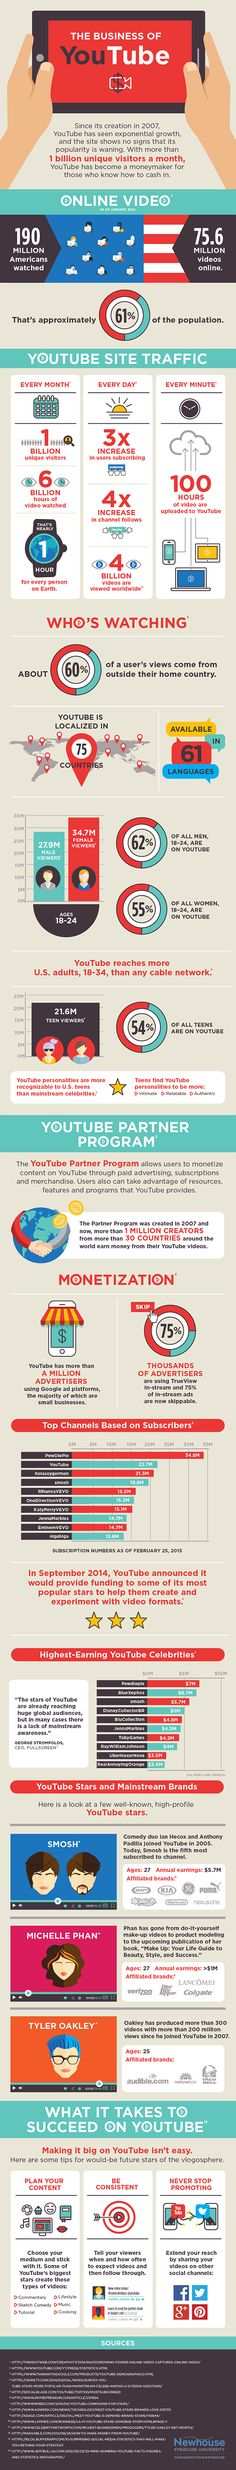 The Business of YouTube Infographic - @visualistan